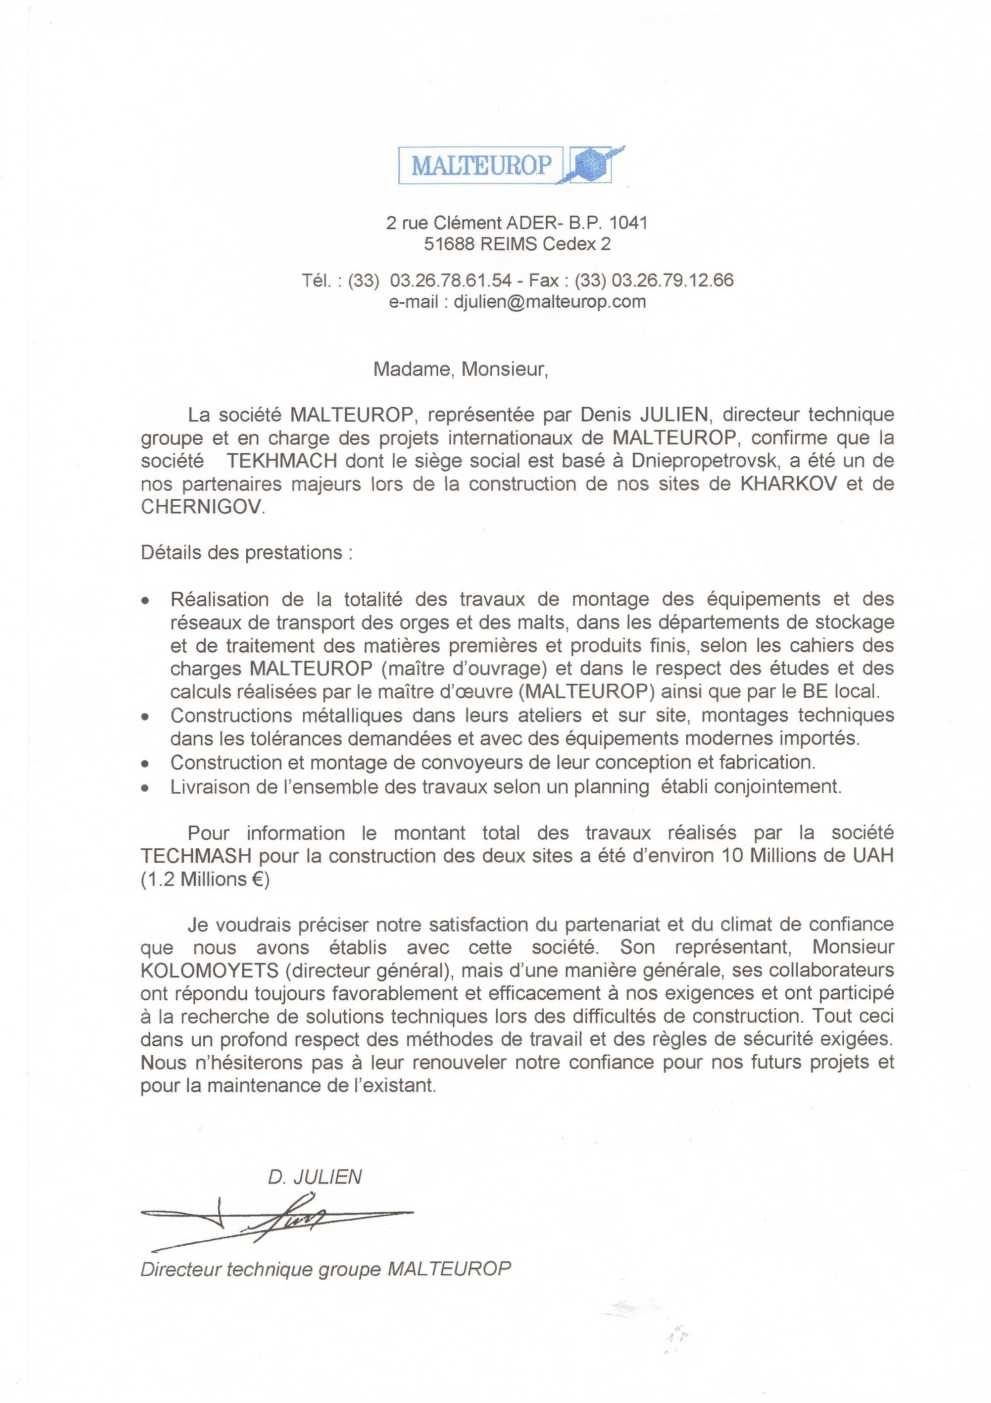 Reference letter of Malteurop